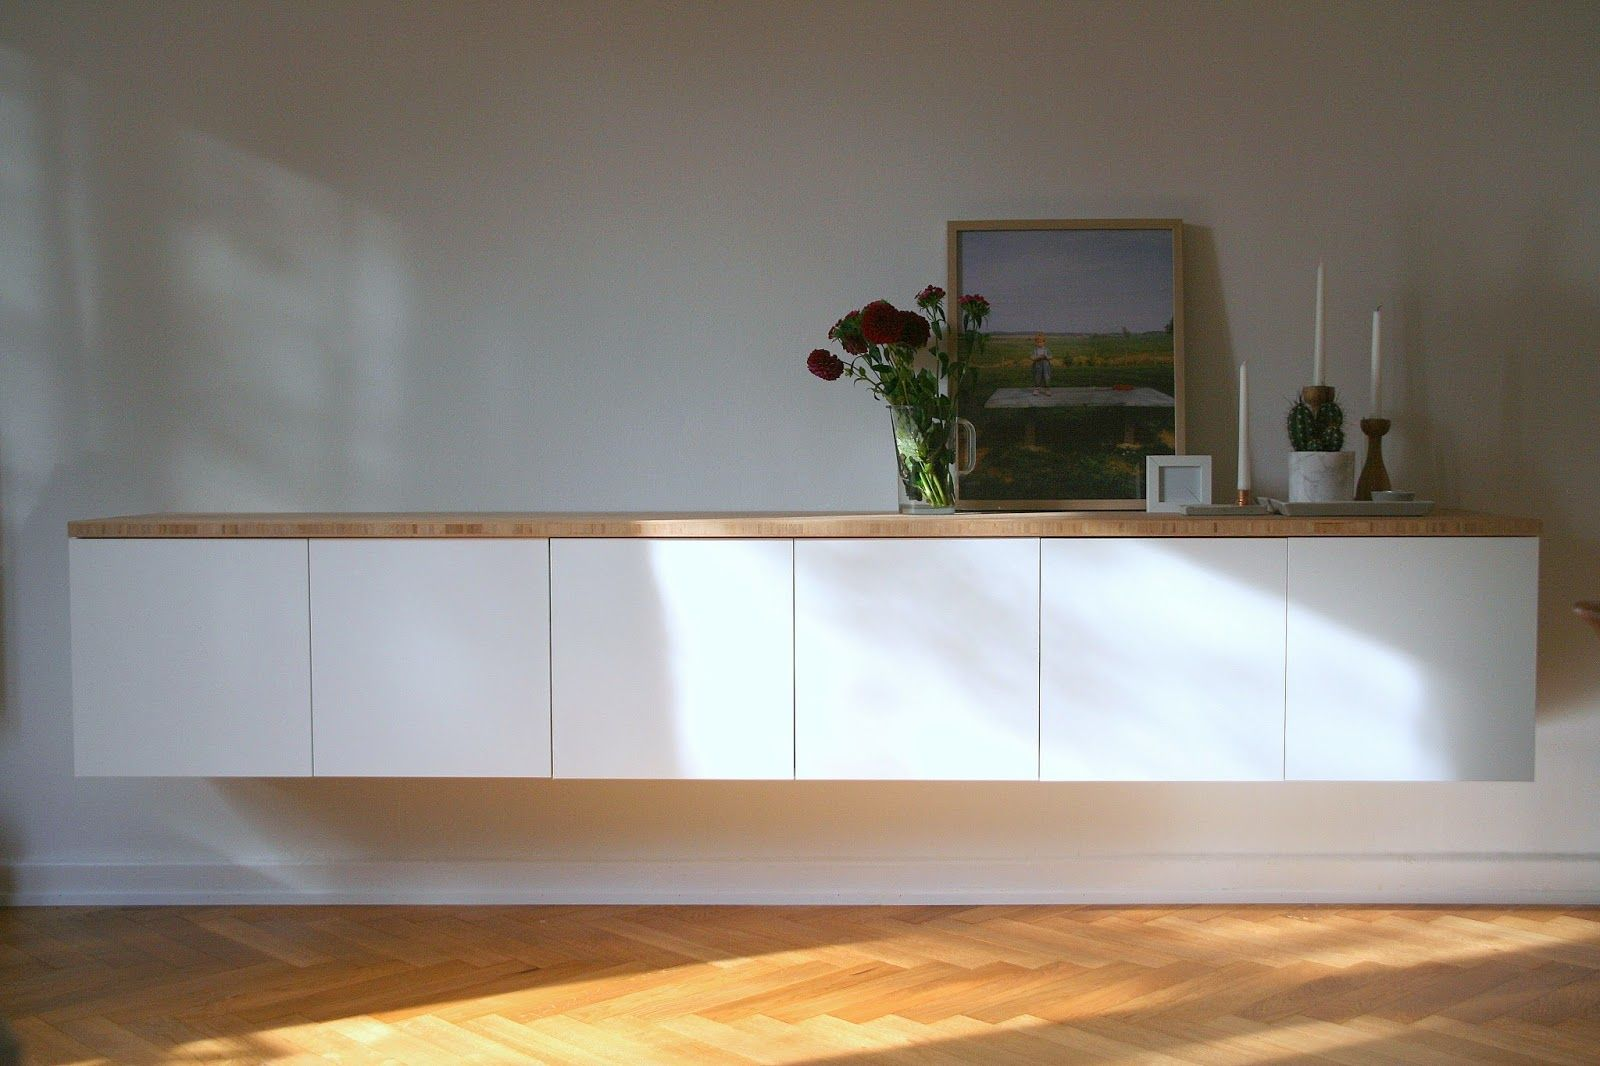 diy sideboard / ikea hack (vida*nullvier) | media | pinterest | ikea